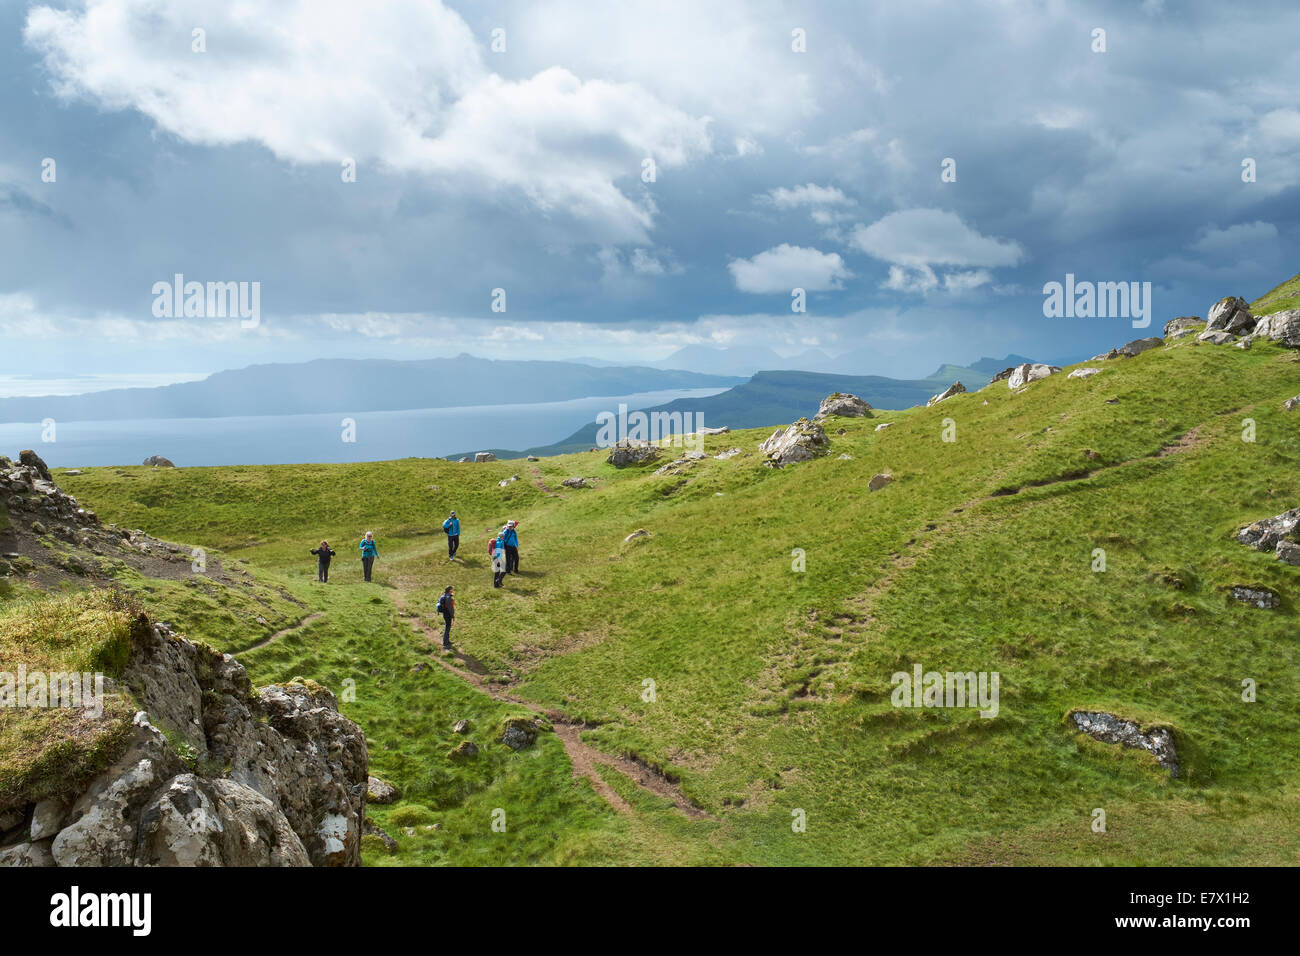 Looking over the Quiraing, Storr and the Sound of Raasay on the Isle of Skye, Scottish Highlands, Scotland. - Stock Image